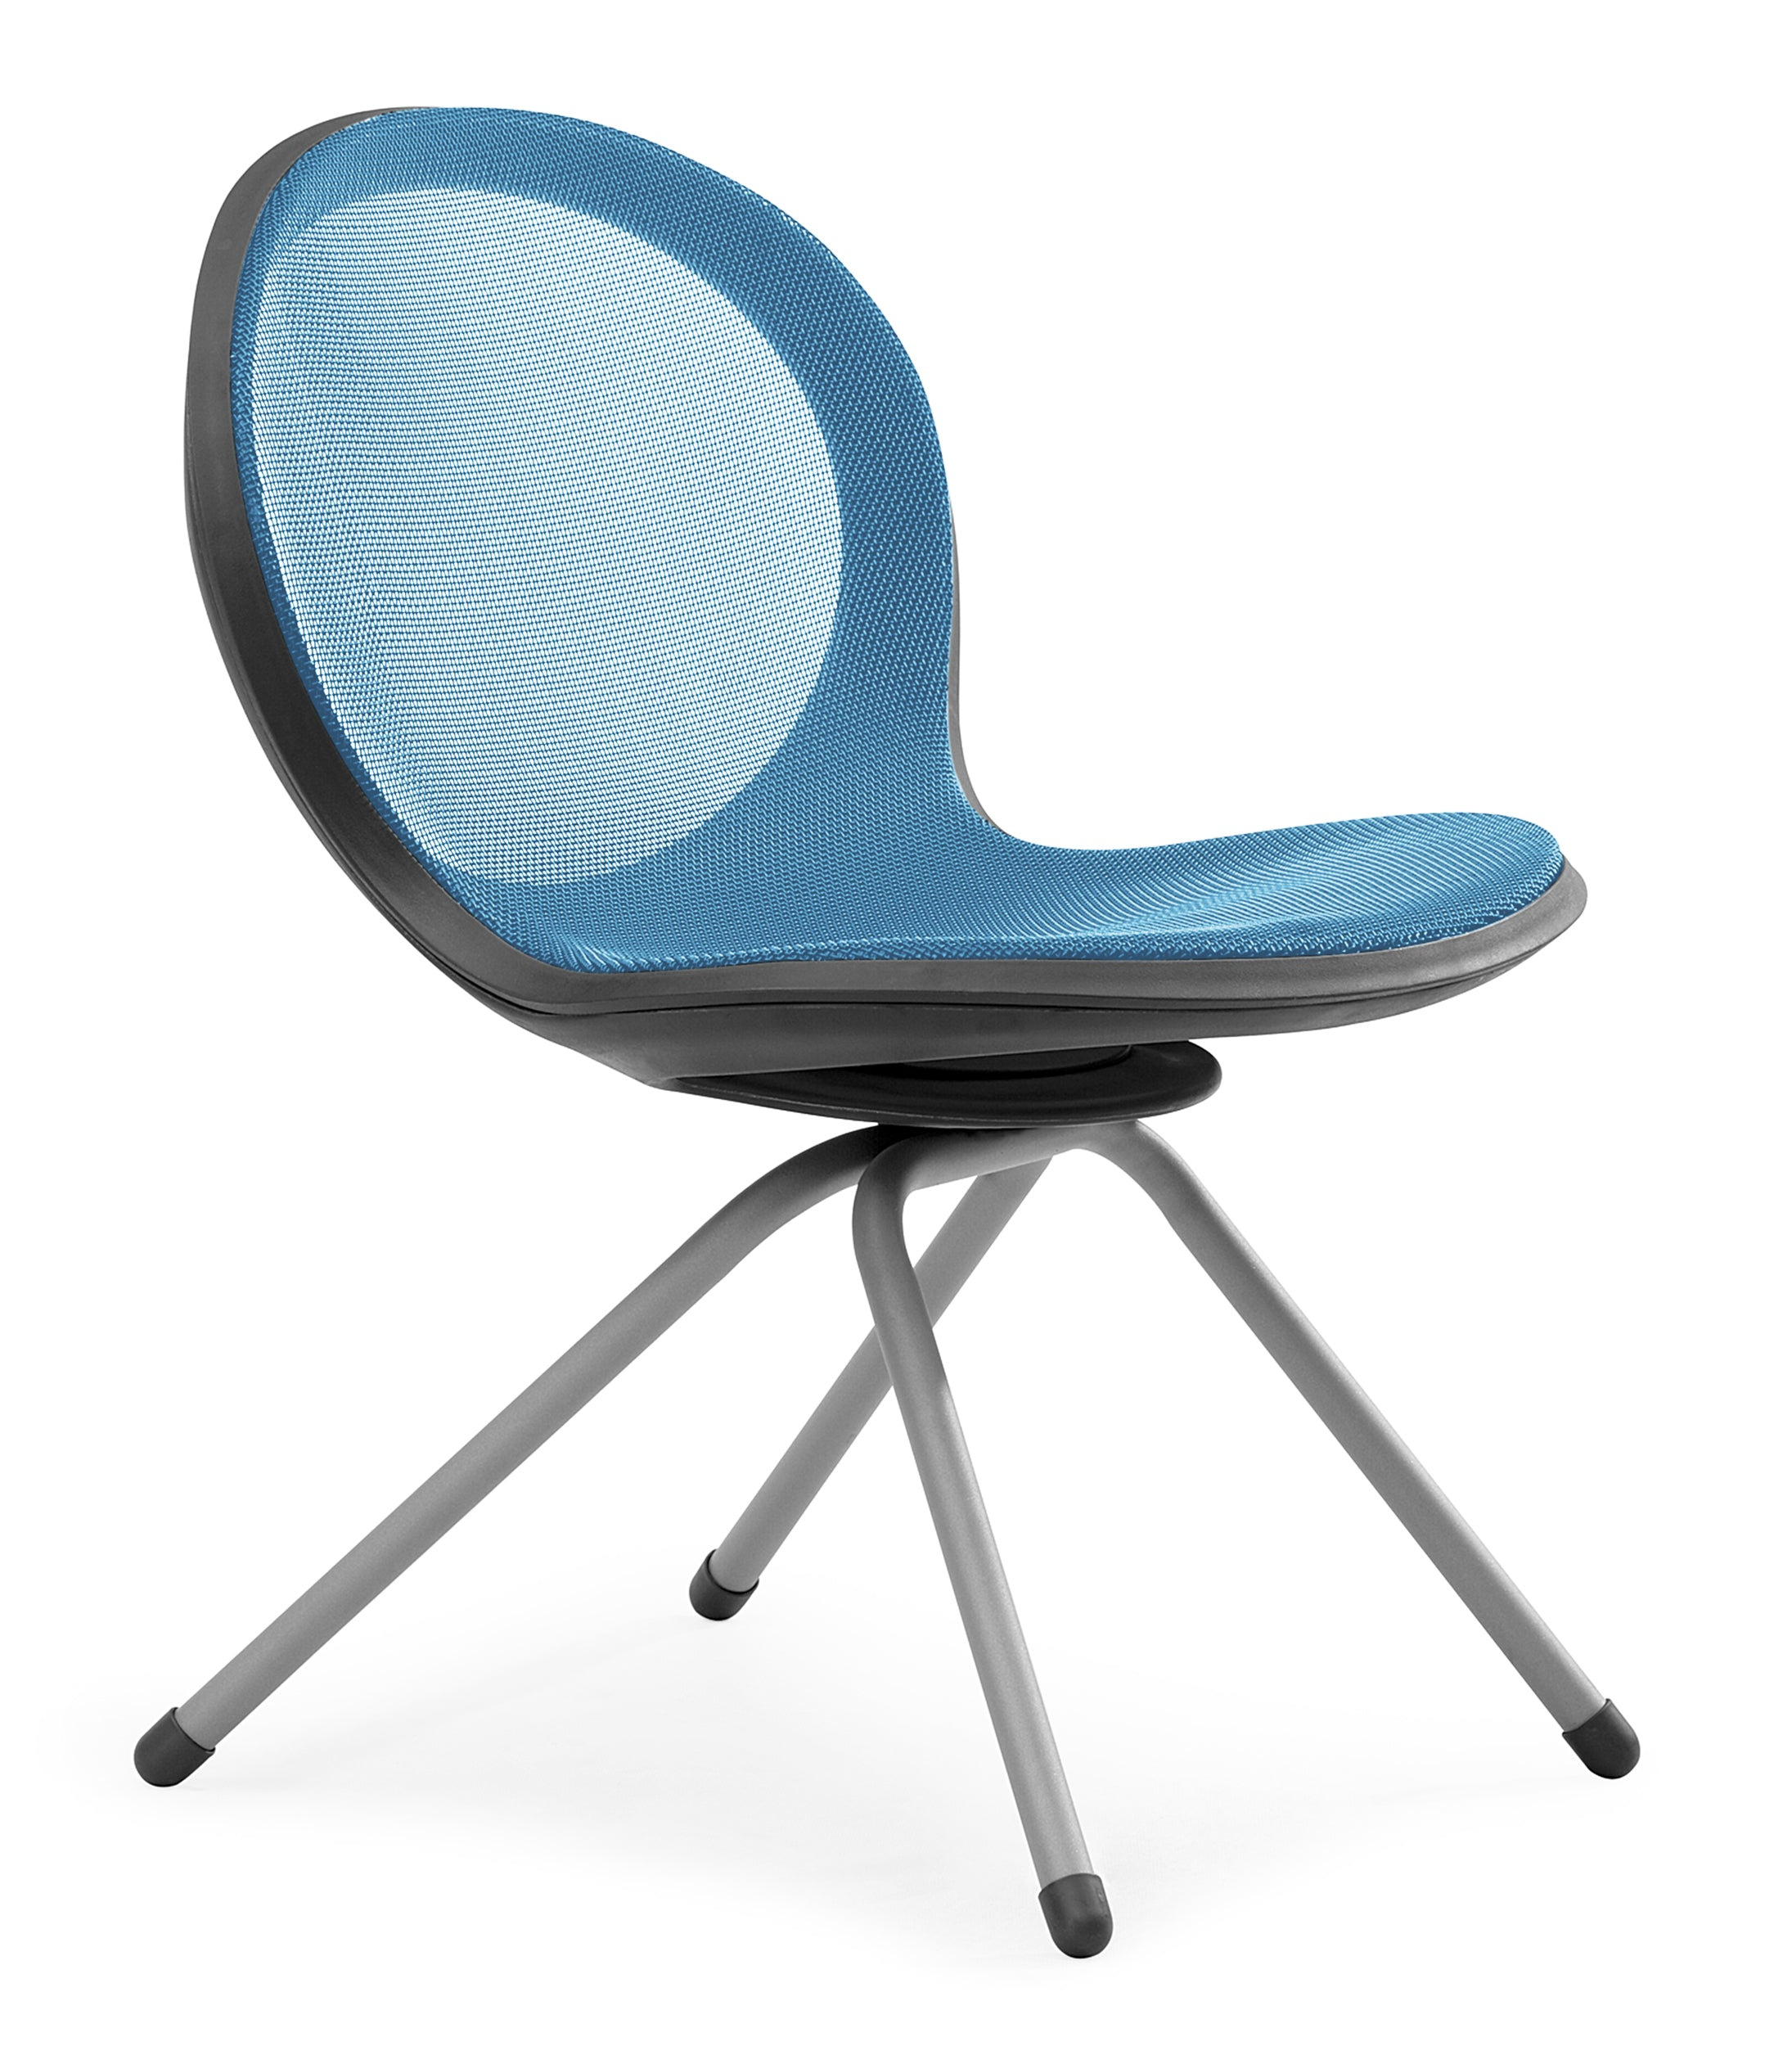 Ofminc Model N202-NET Series 4-Legged Chair